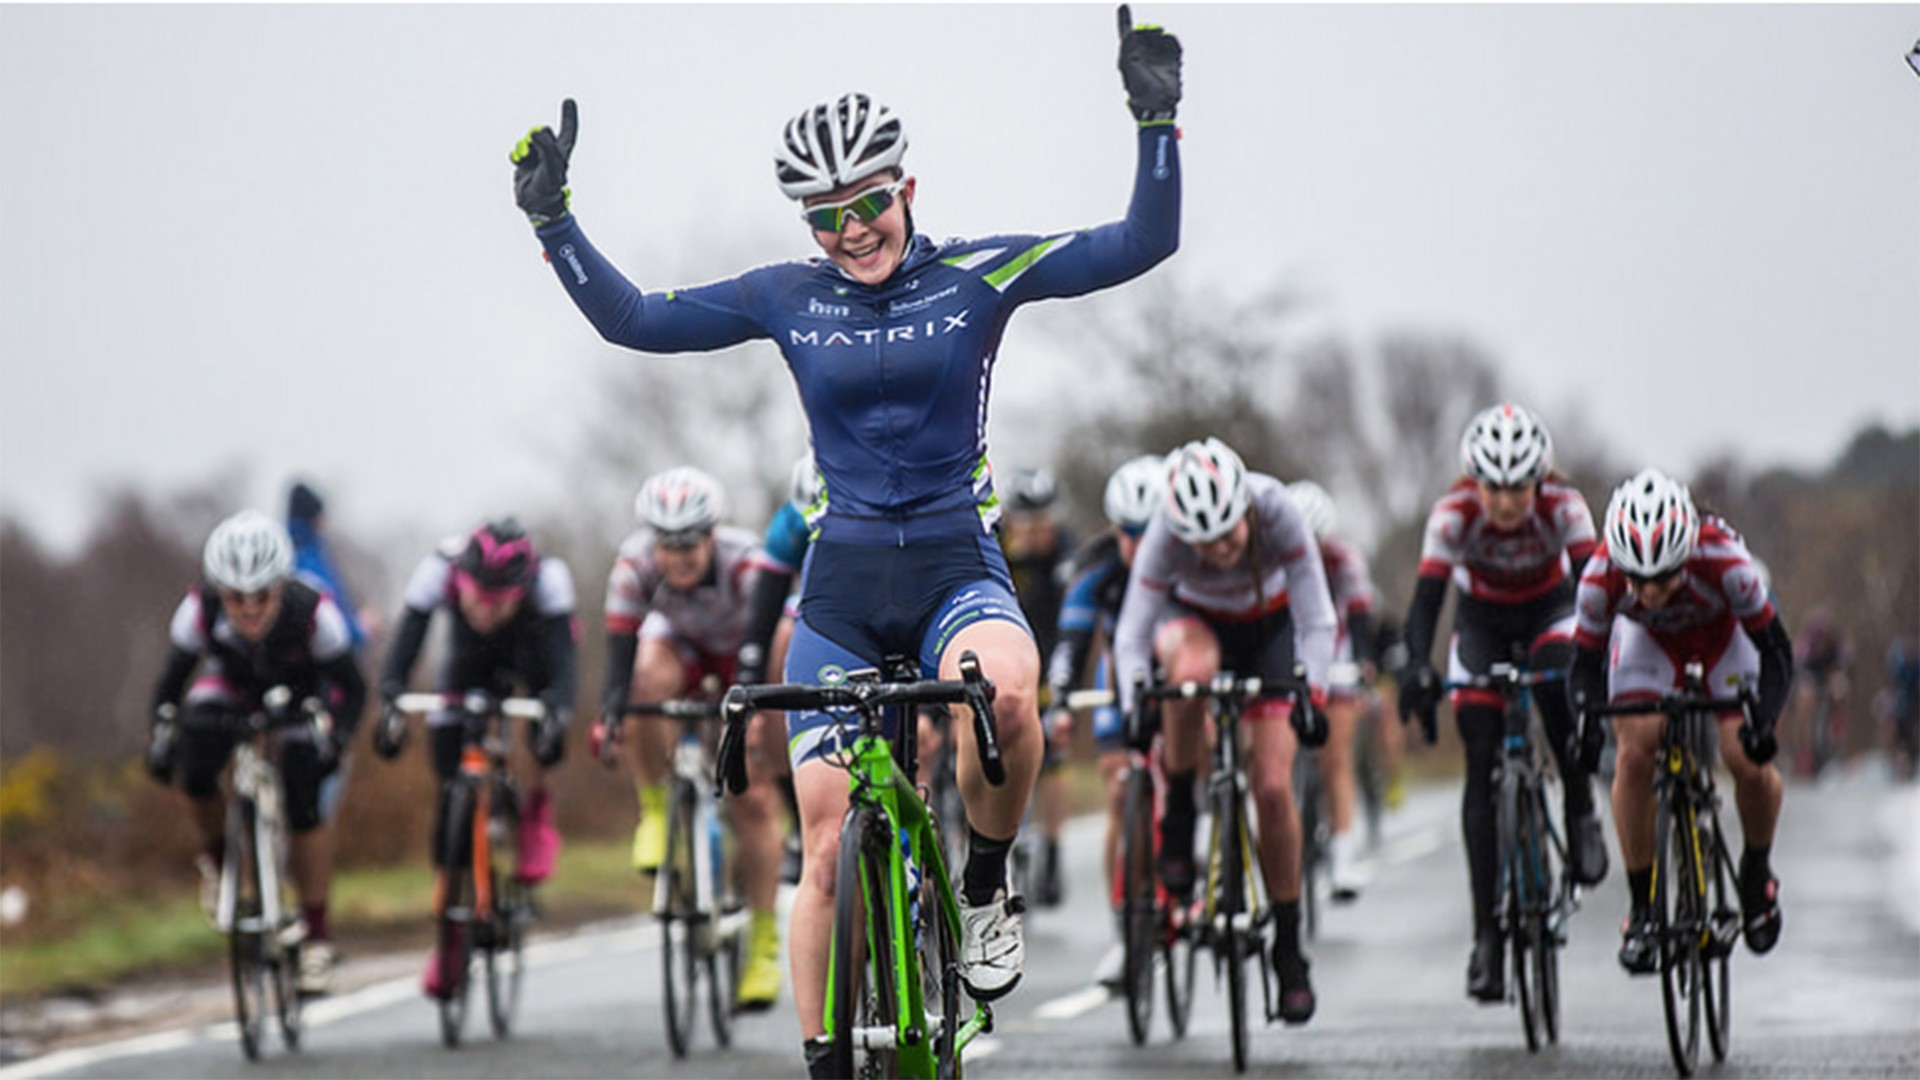 Lucy Shaw advises mixing up your training rides to keep them fun